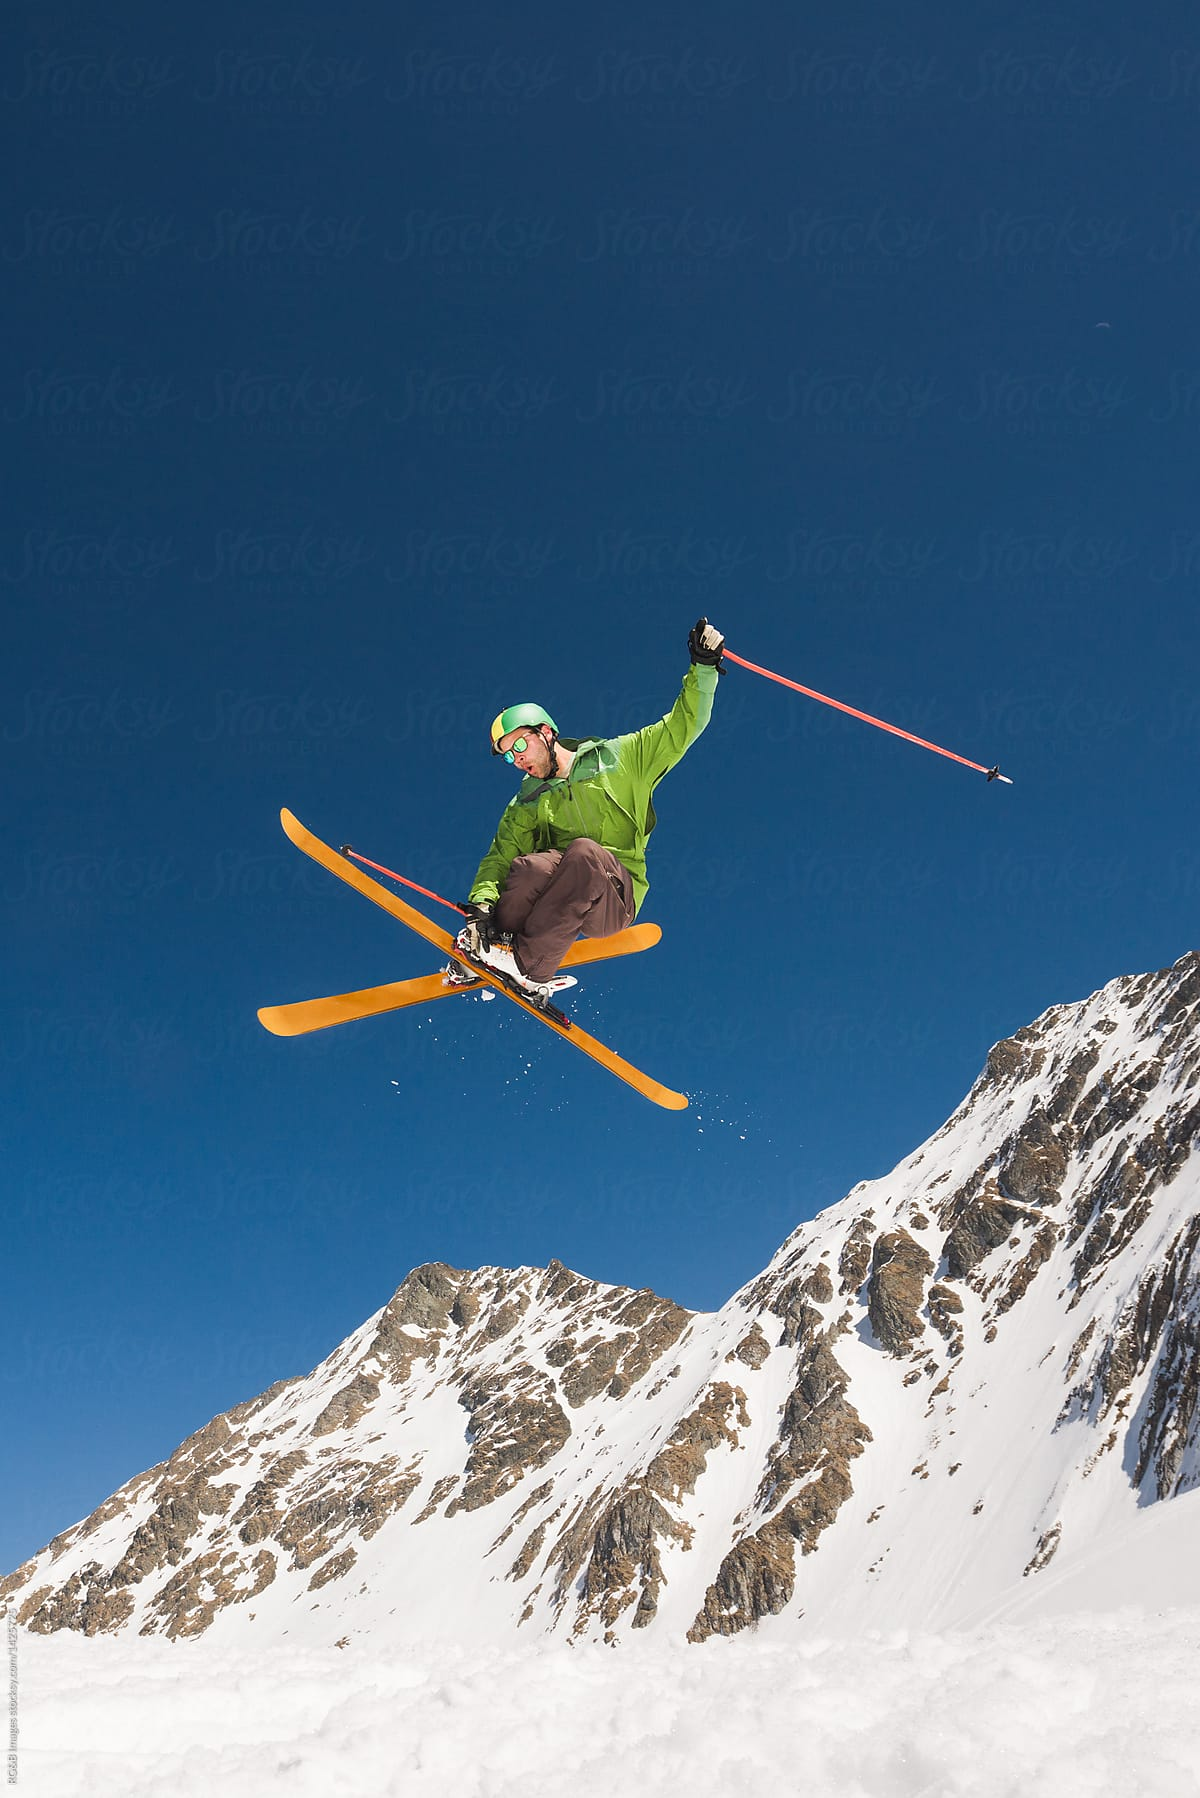 fe1bd60638b1 Male rider performing helicopter ski trick midair against the blue sky by  RG B Images for Stocksy